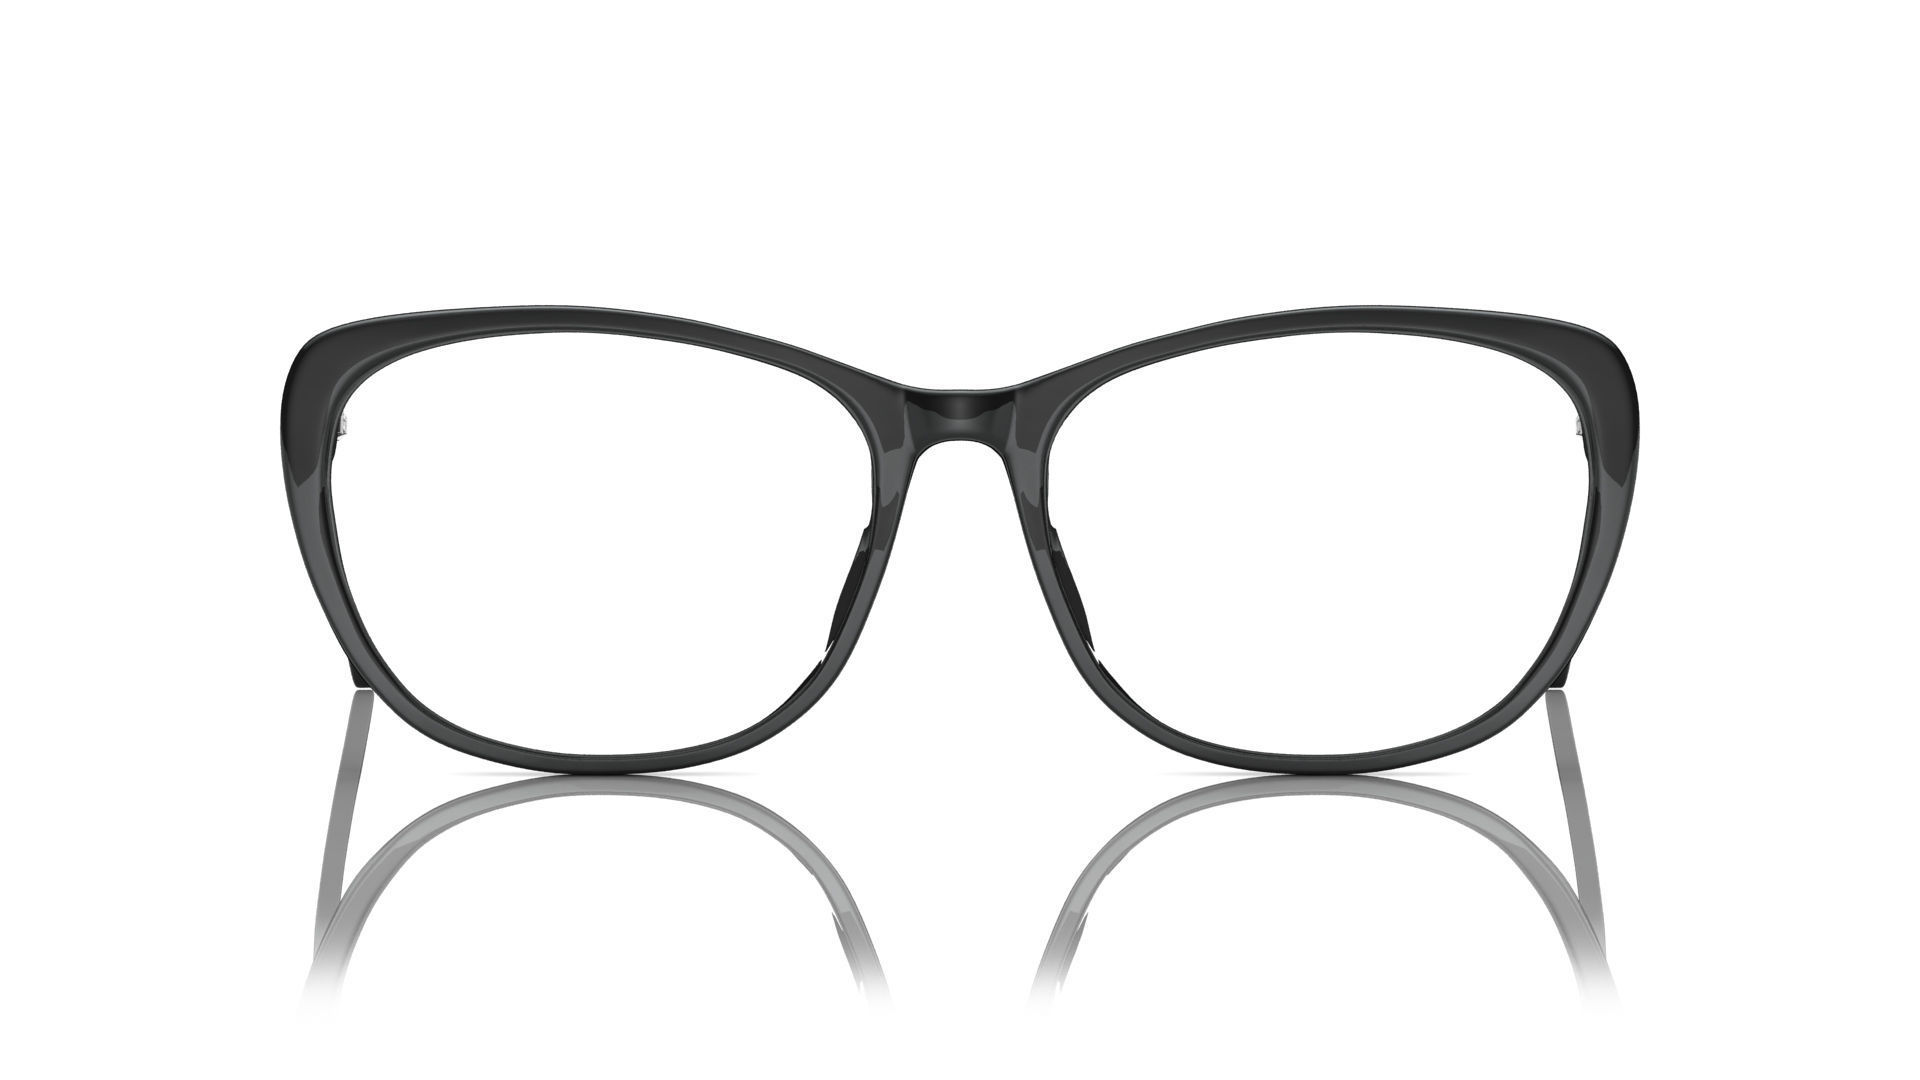 Eyeglasses for Men and Women